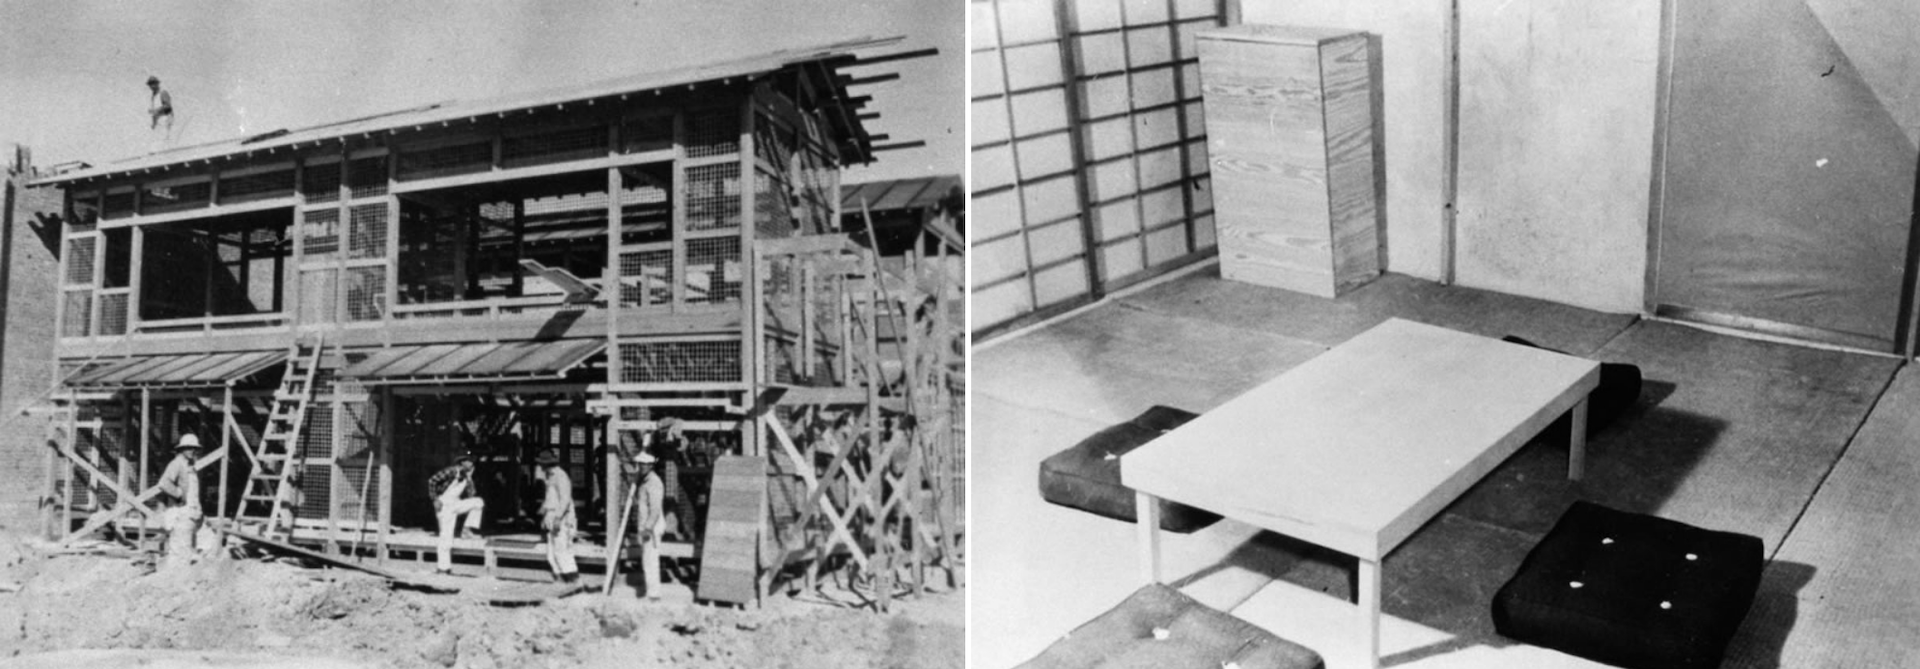 Building the Japanese village in the Dugway Proving Grounds, Utah, 1943. Interior of a home in the Japanese village. Photos in public domain